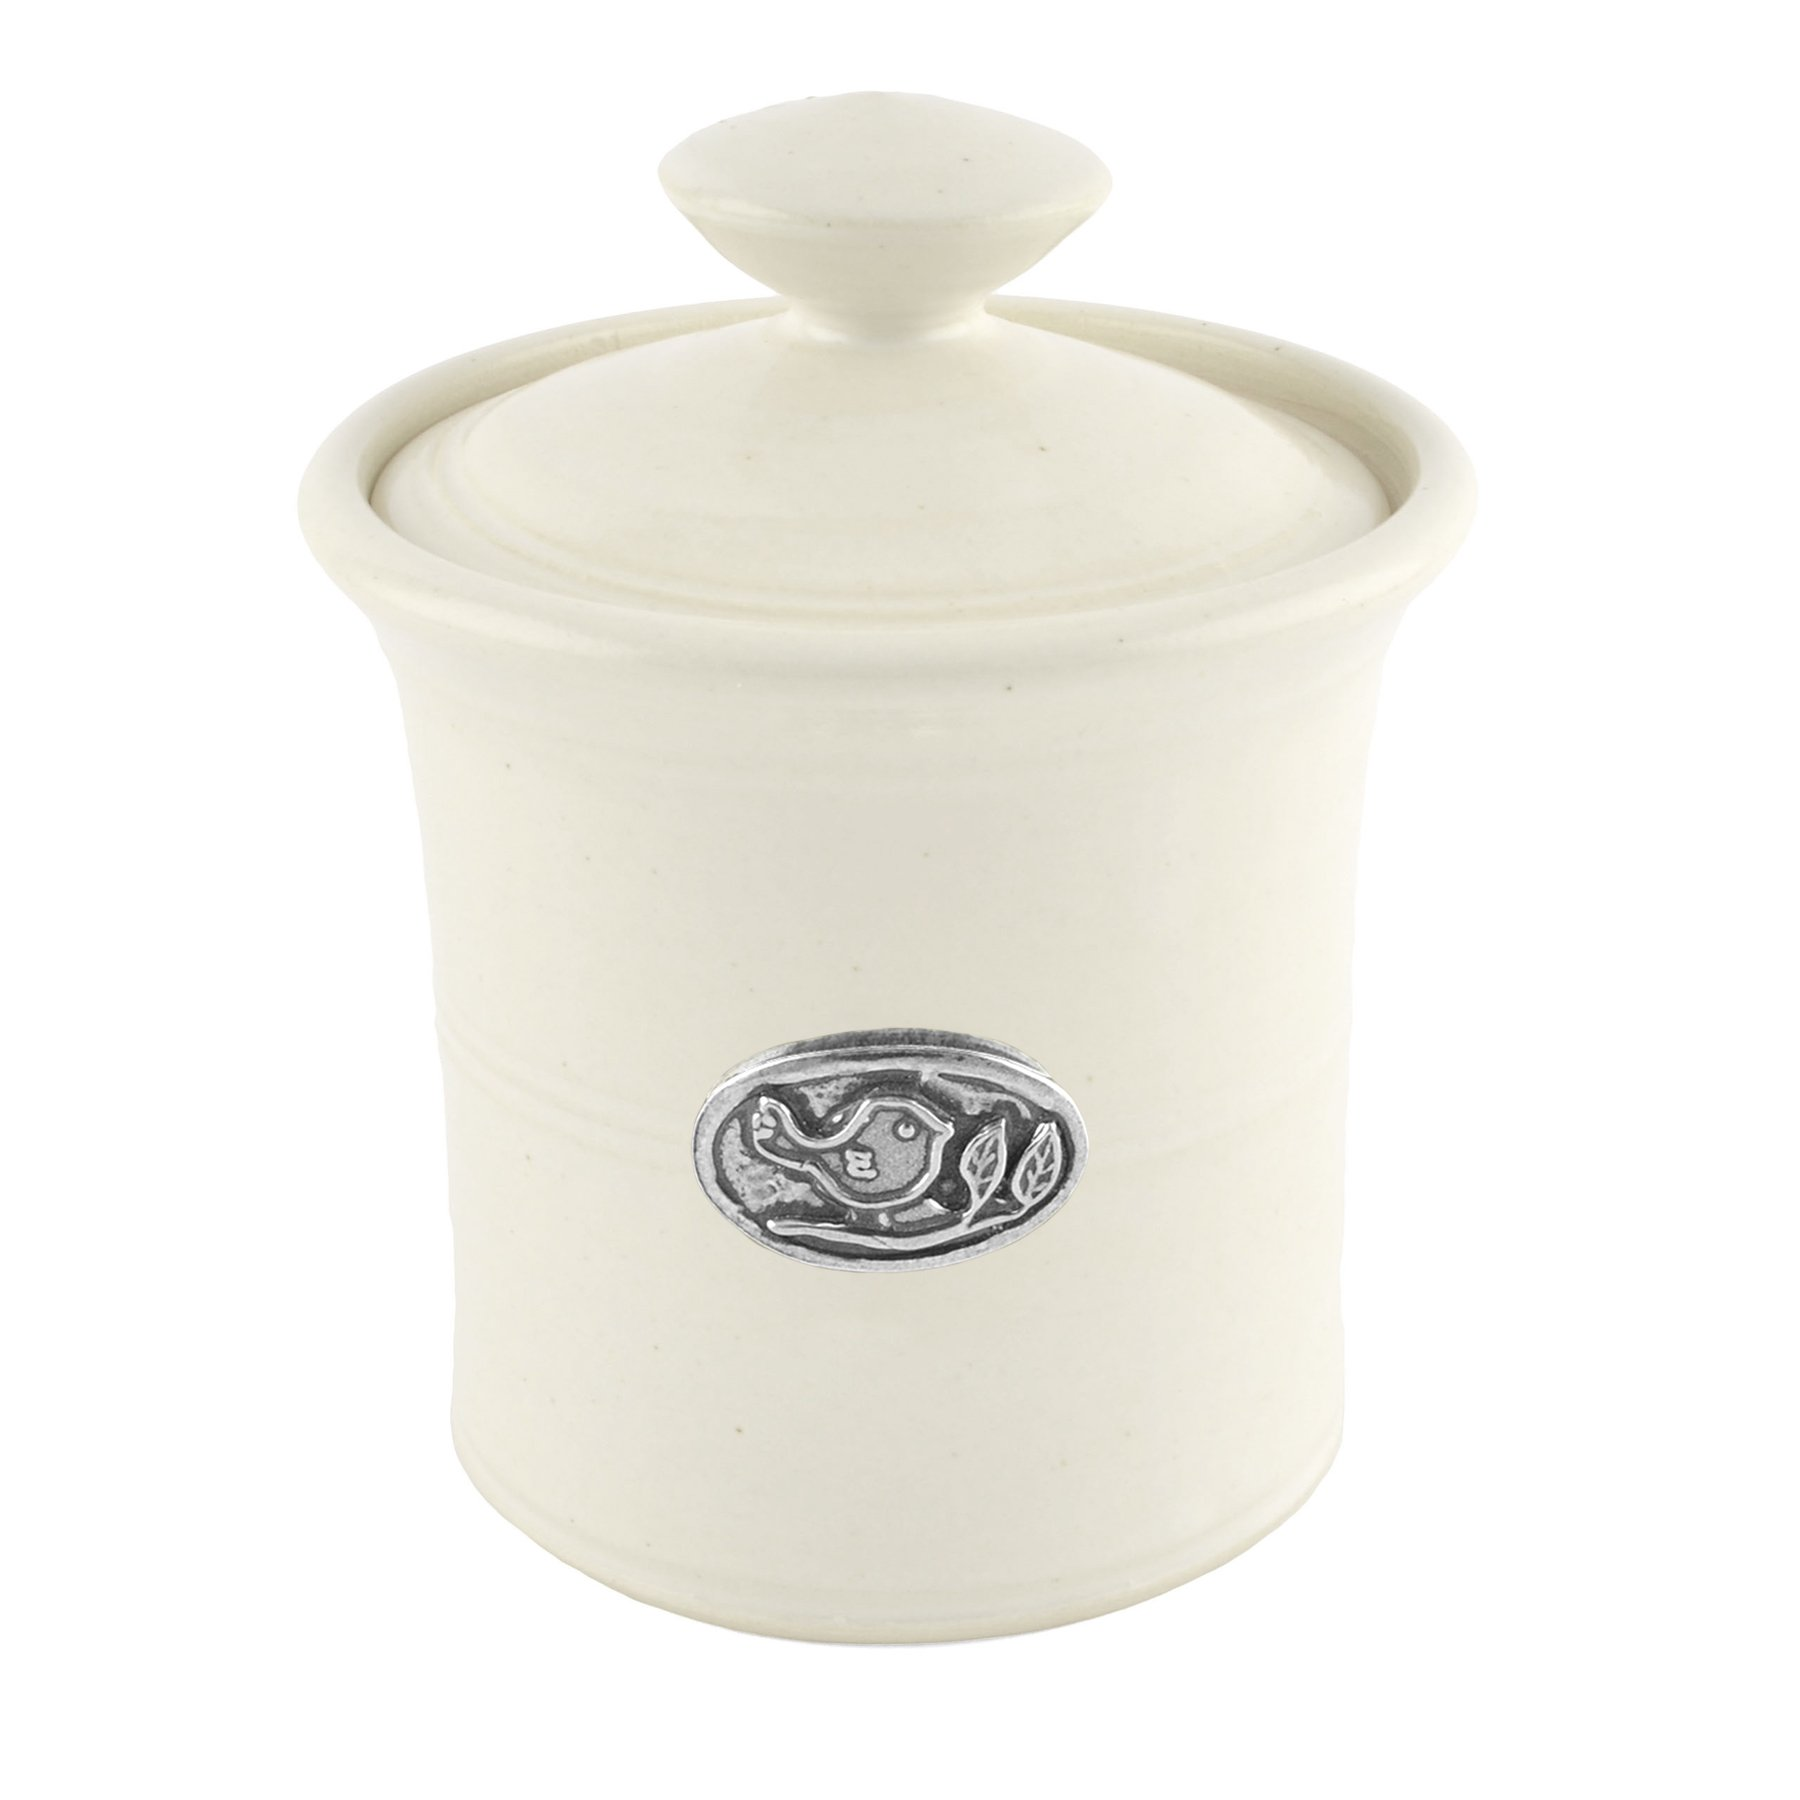 Oregon Stoneware Studio Bird Garlic Pot, Whipping Cream by Oregon Stoneware Studio